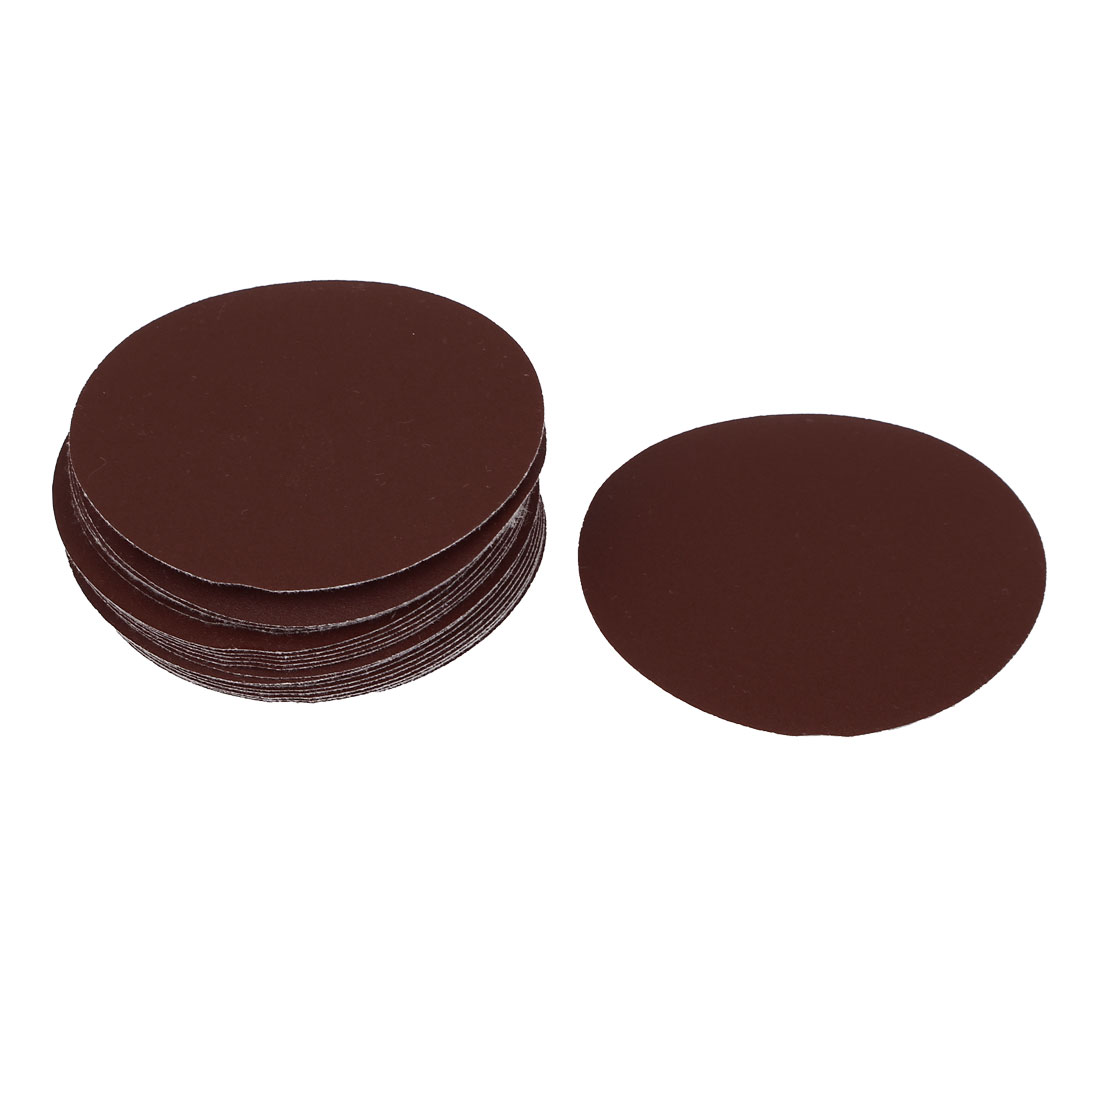 4-inch Dia 320 Grit Sanding Disc Flocking Sandpaper 25pcs for Oscillating Tool